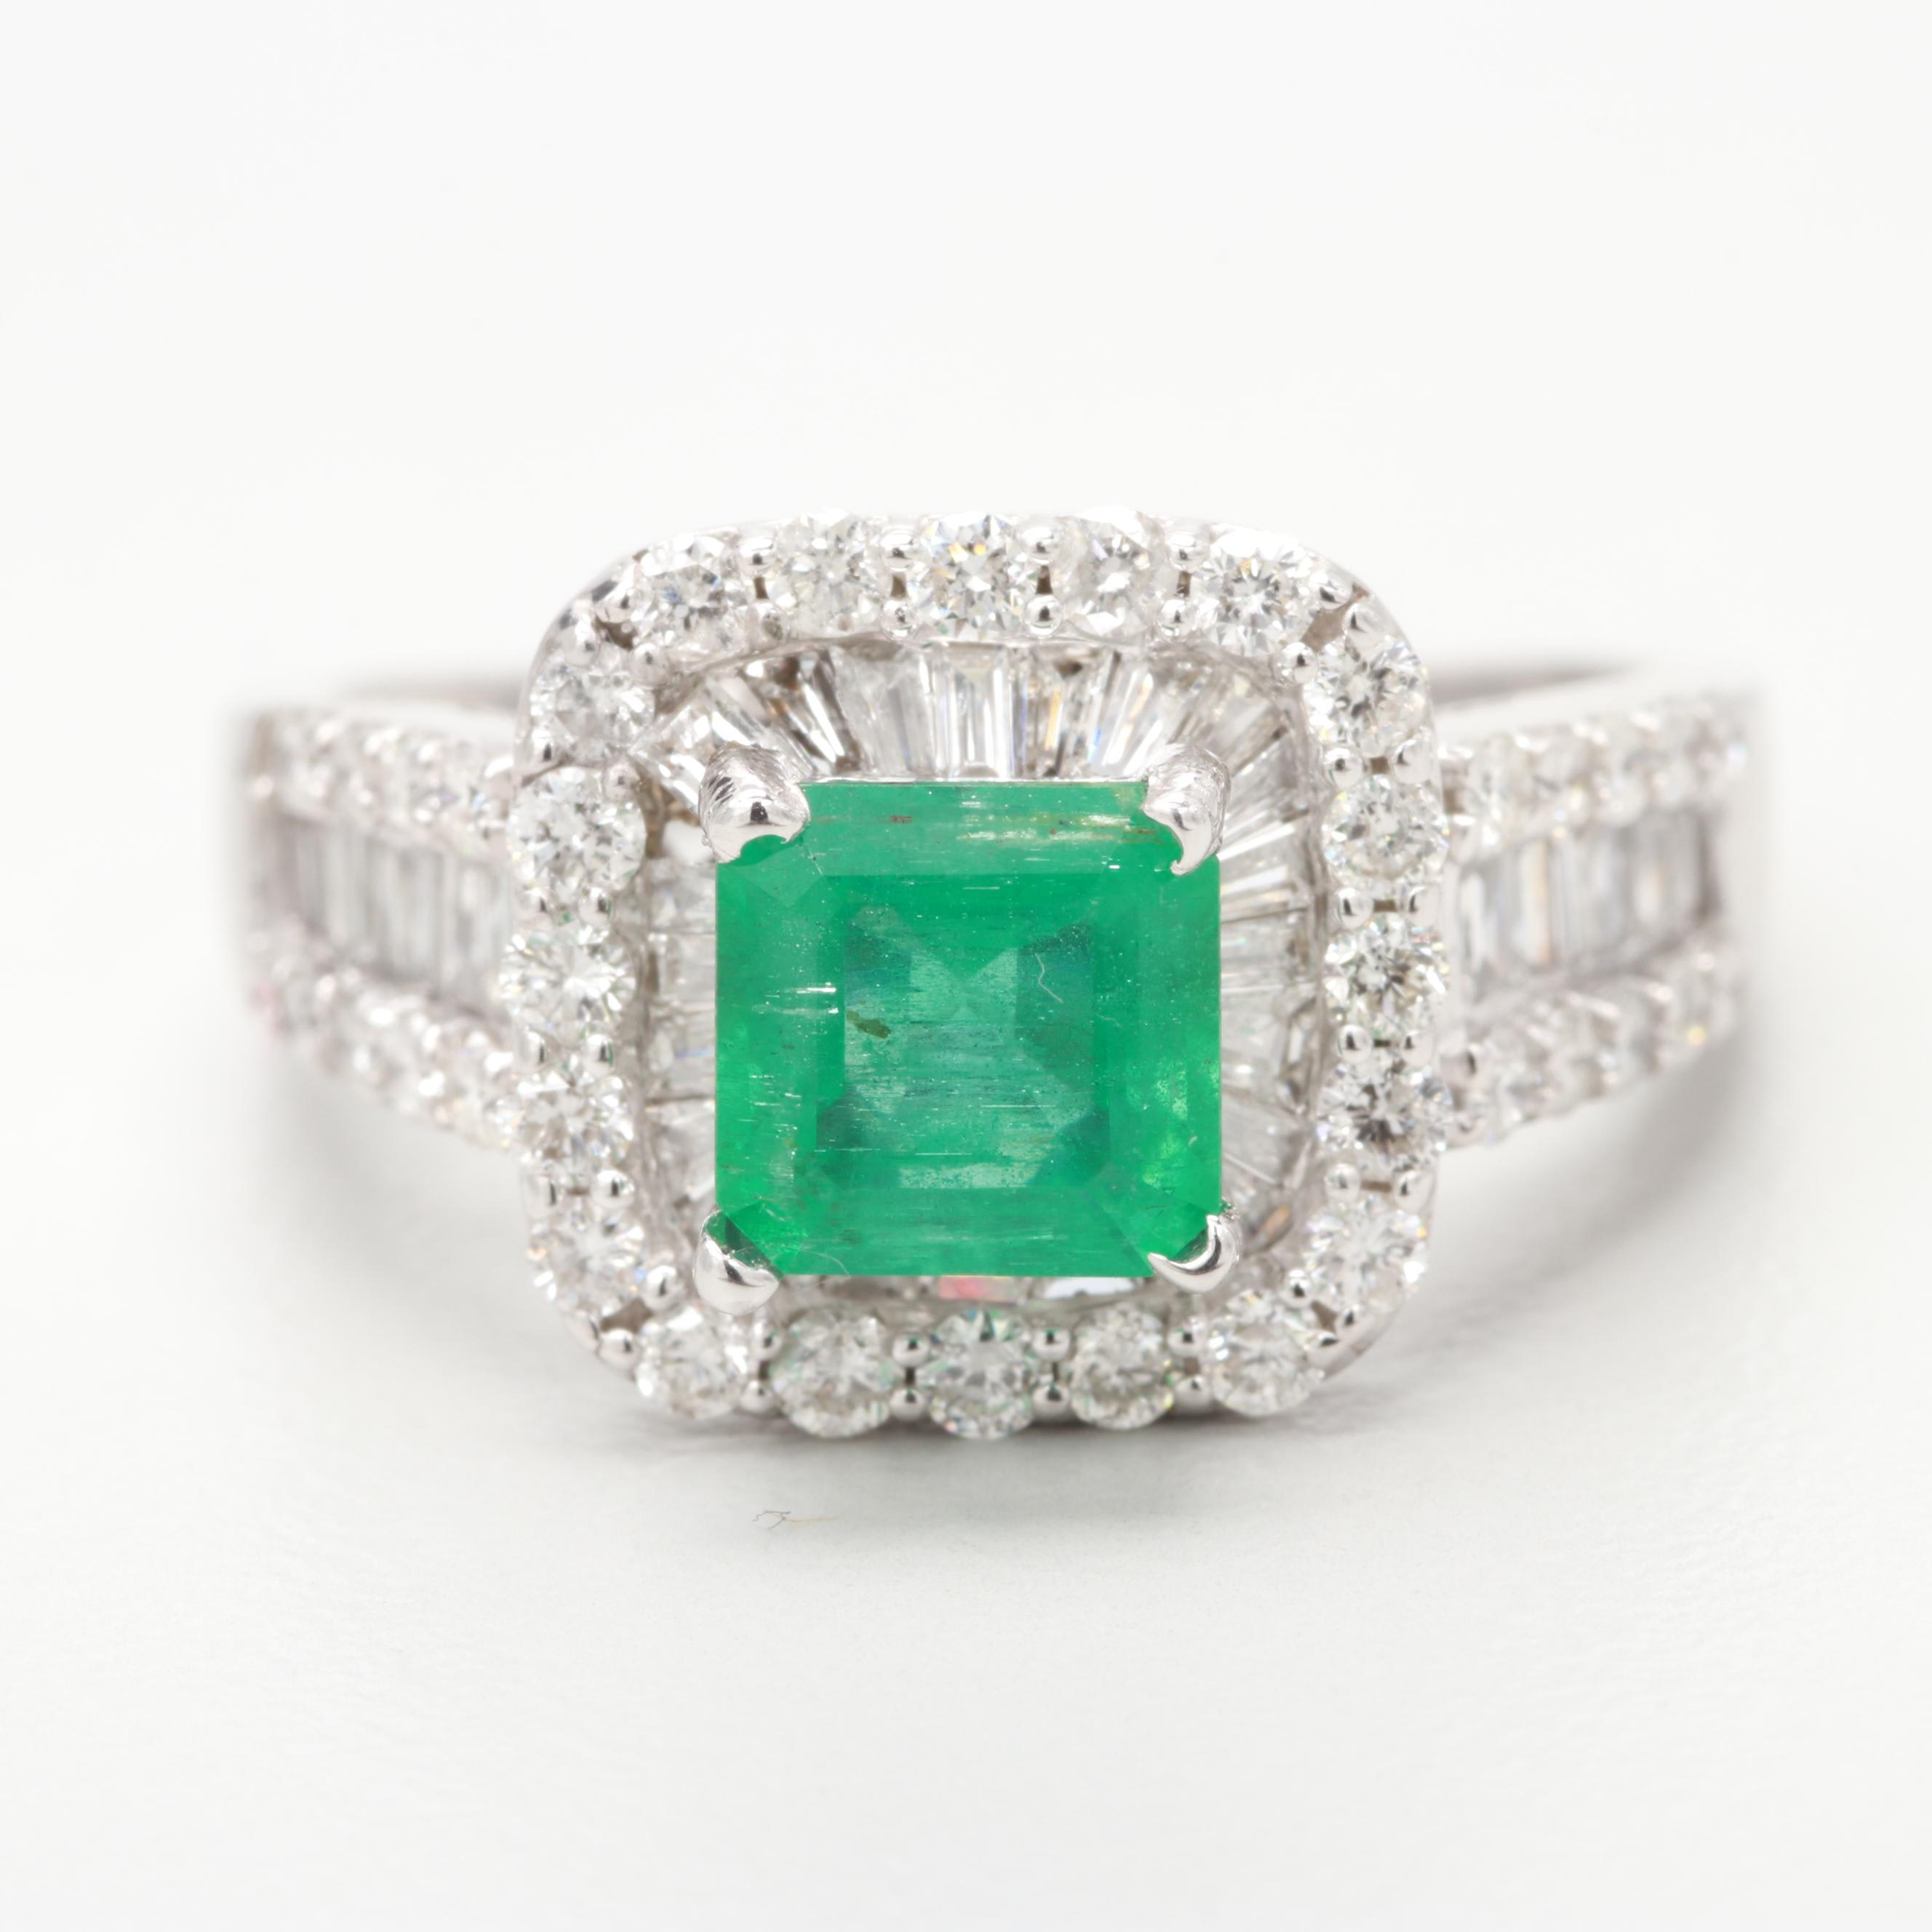 14K White Gold Emerald and 1.02 CTW Diamond Ring